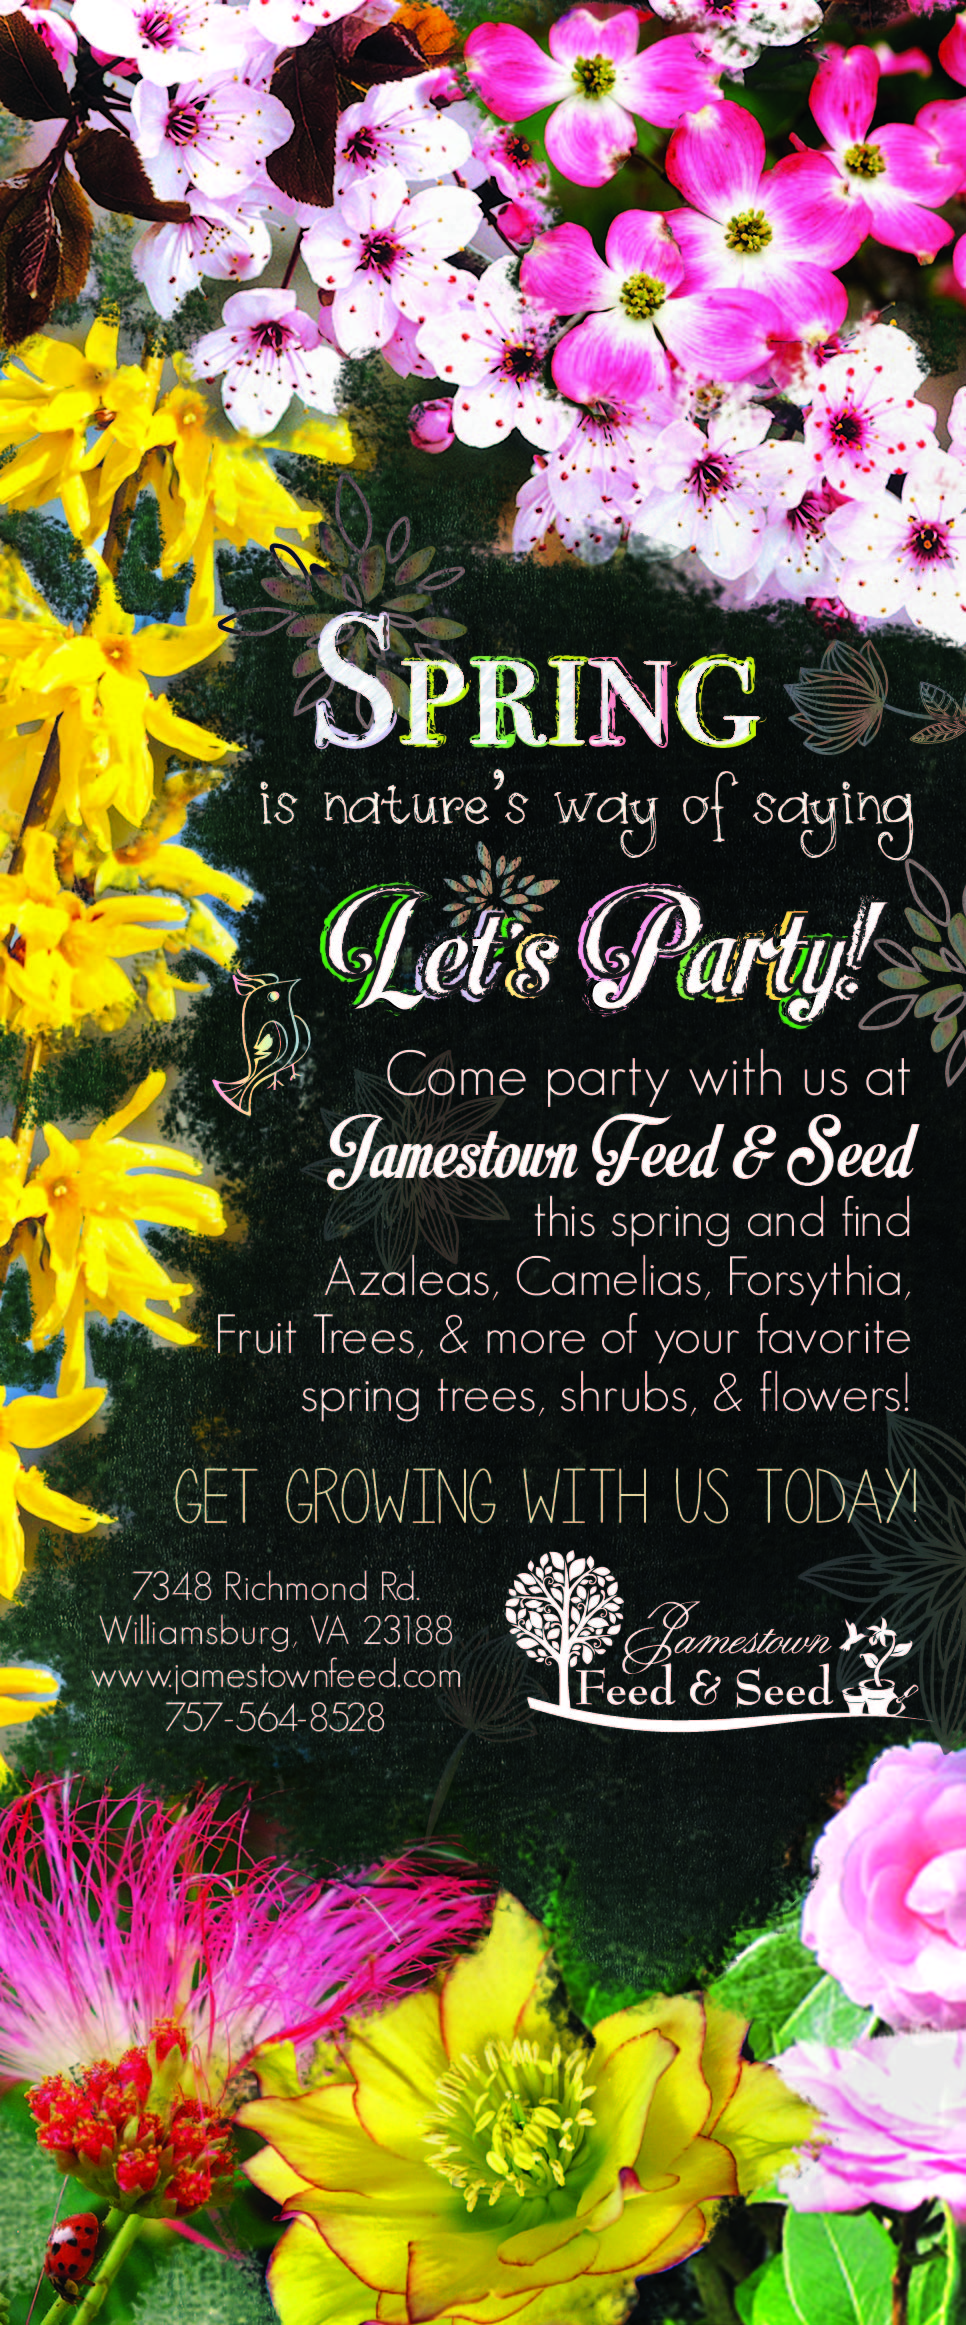 jamestown feed saturday garden pages ad 2016-01.jpg